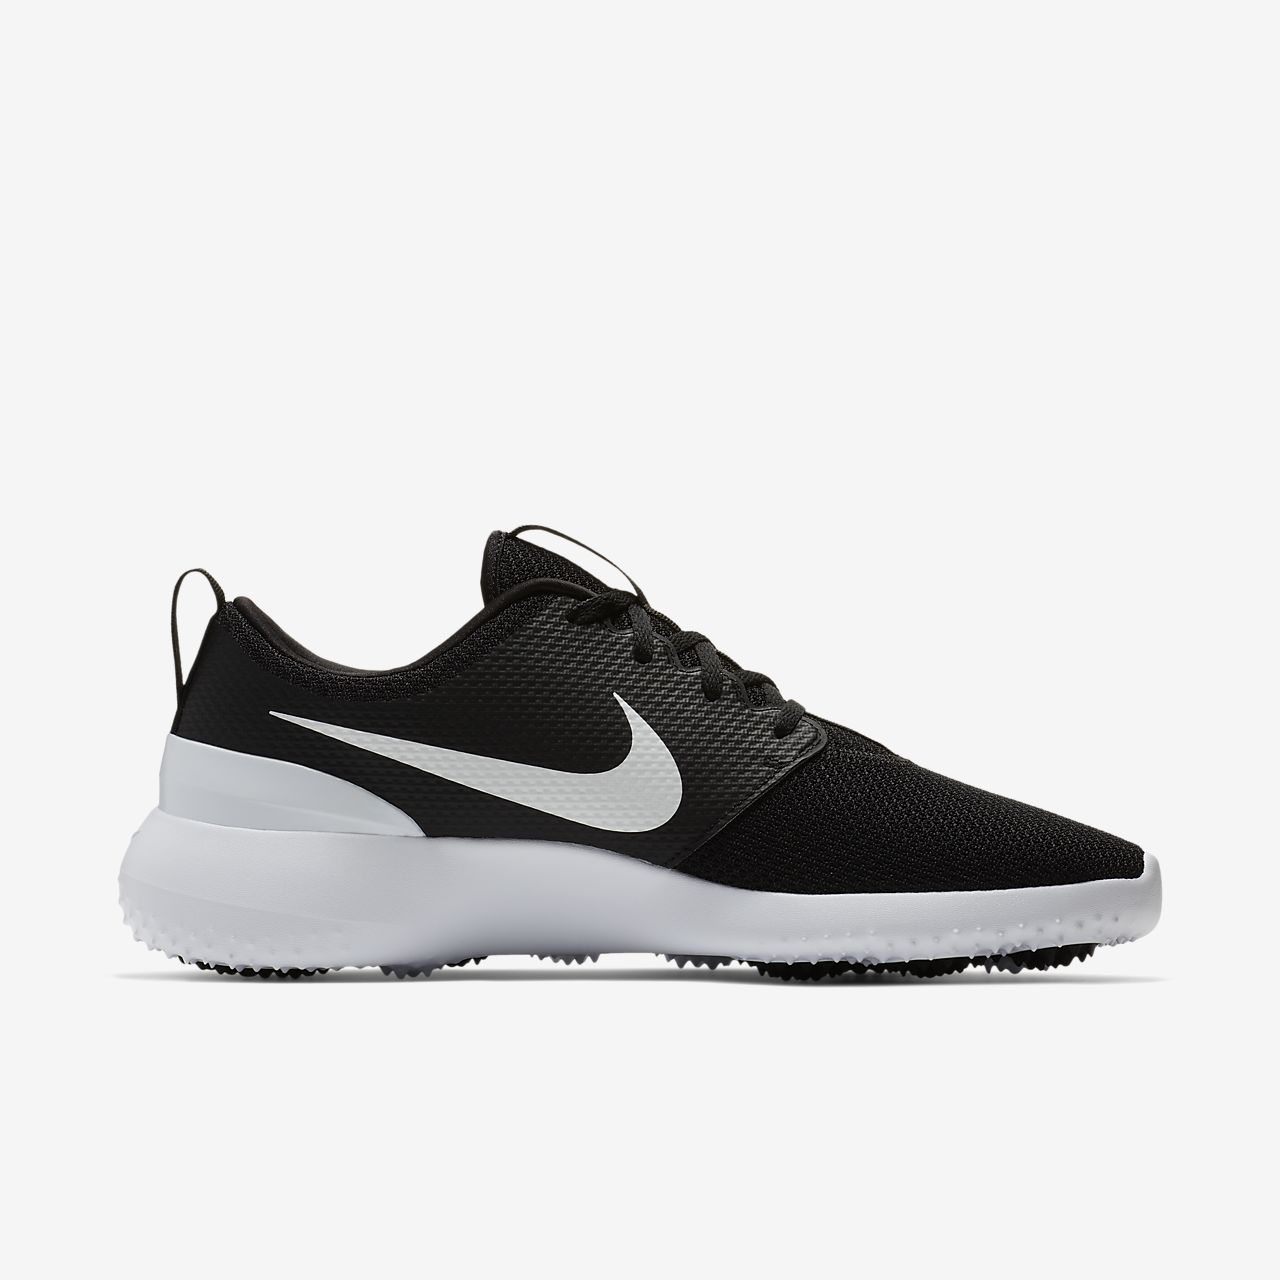 low priced 0d1a1 18420 Nike Roshe G Men s Golf Shoe. Nike.com